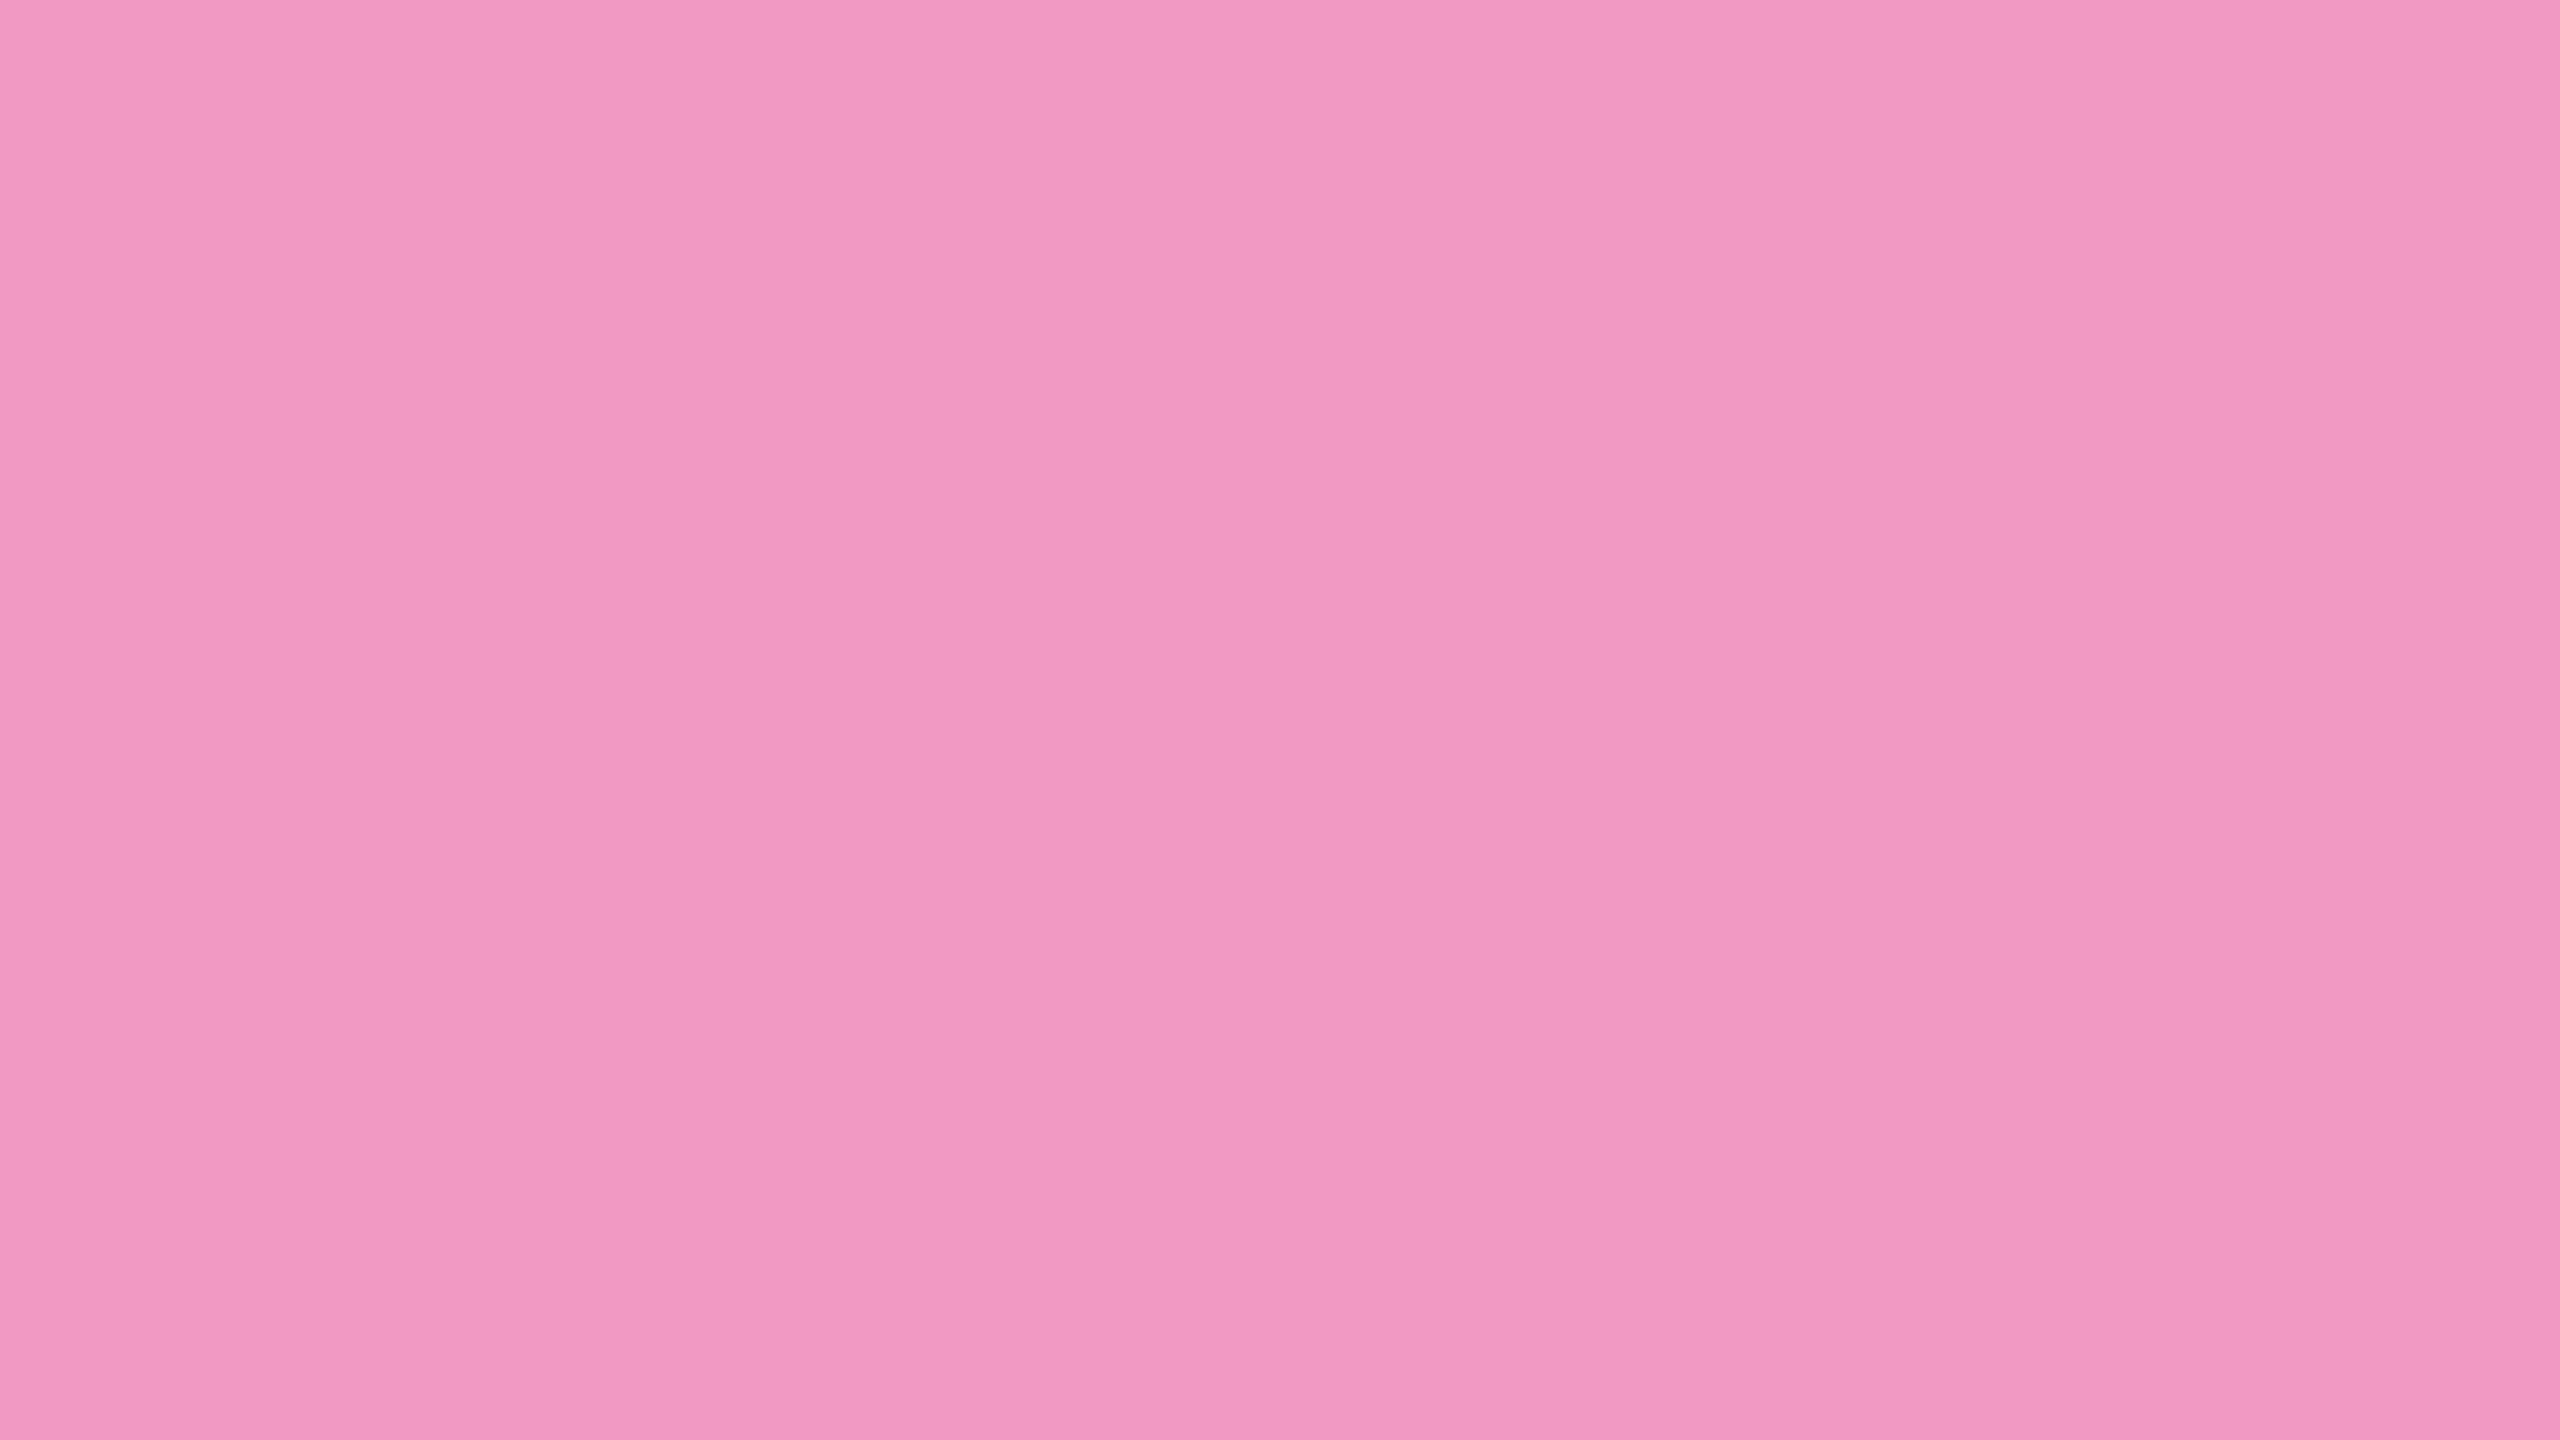 2560x1440 Pastel Magenta Solid Color Background